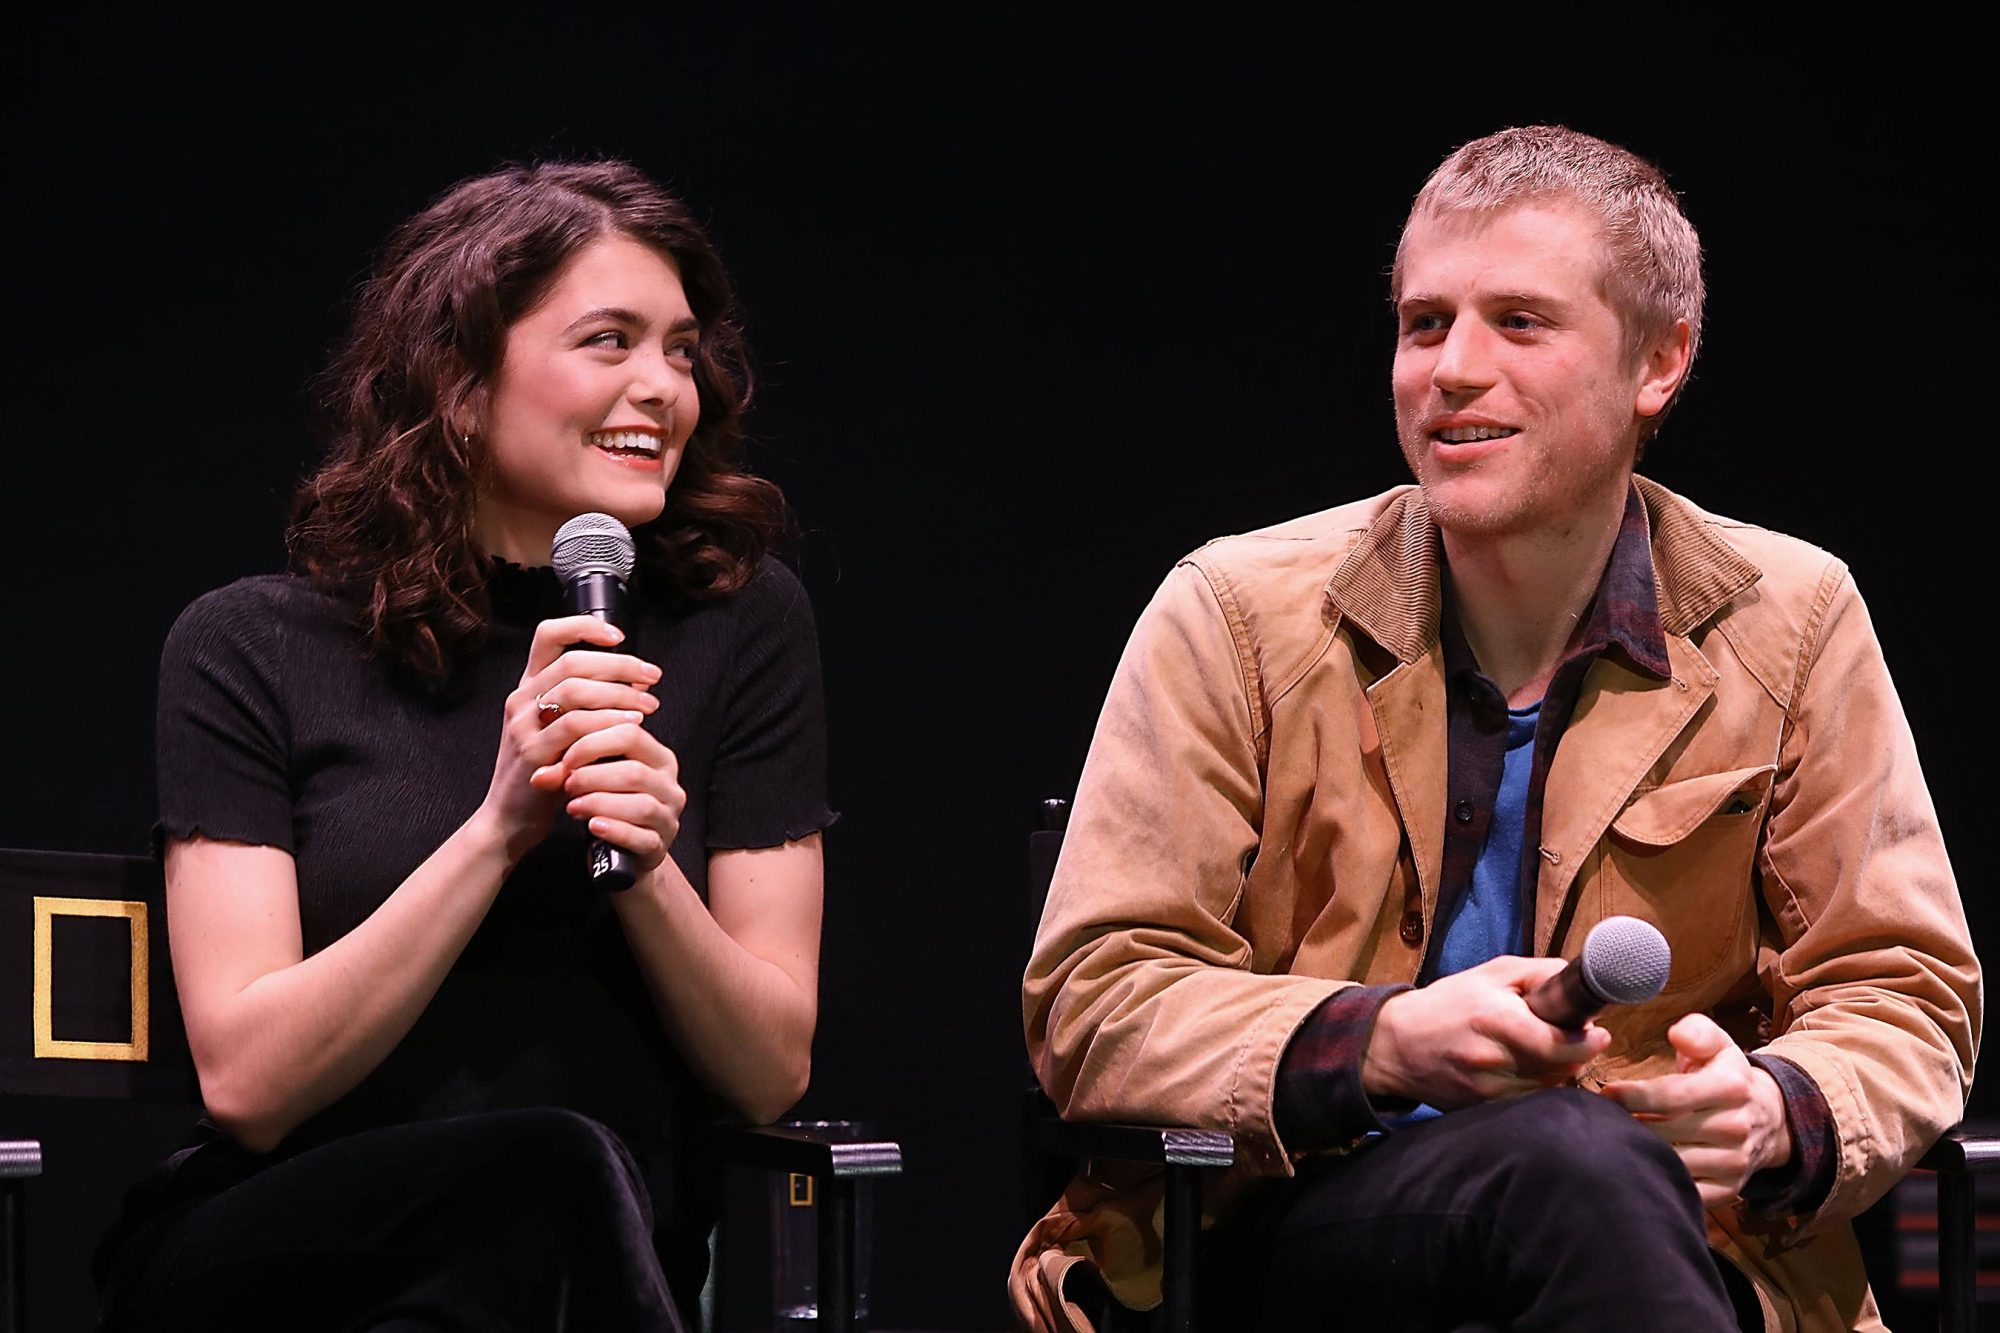 """National Geographic Presents """"Nat Geo Further Base Camp"""" At SXSW 2017 - Day 3"""